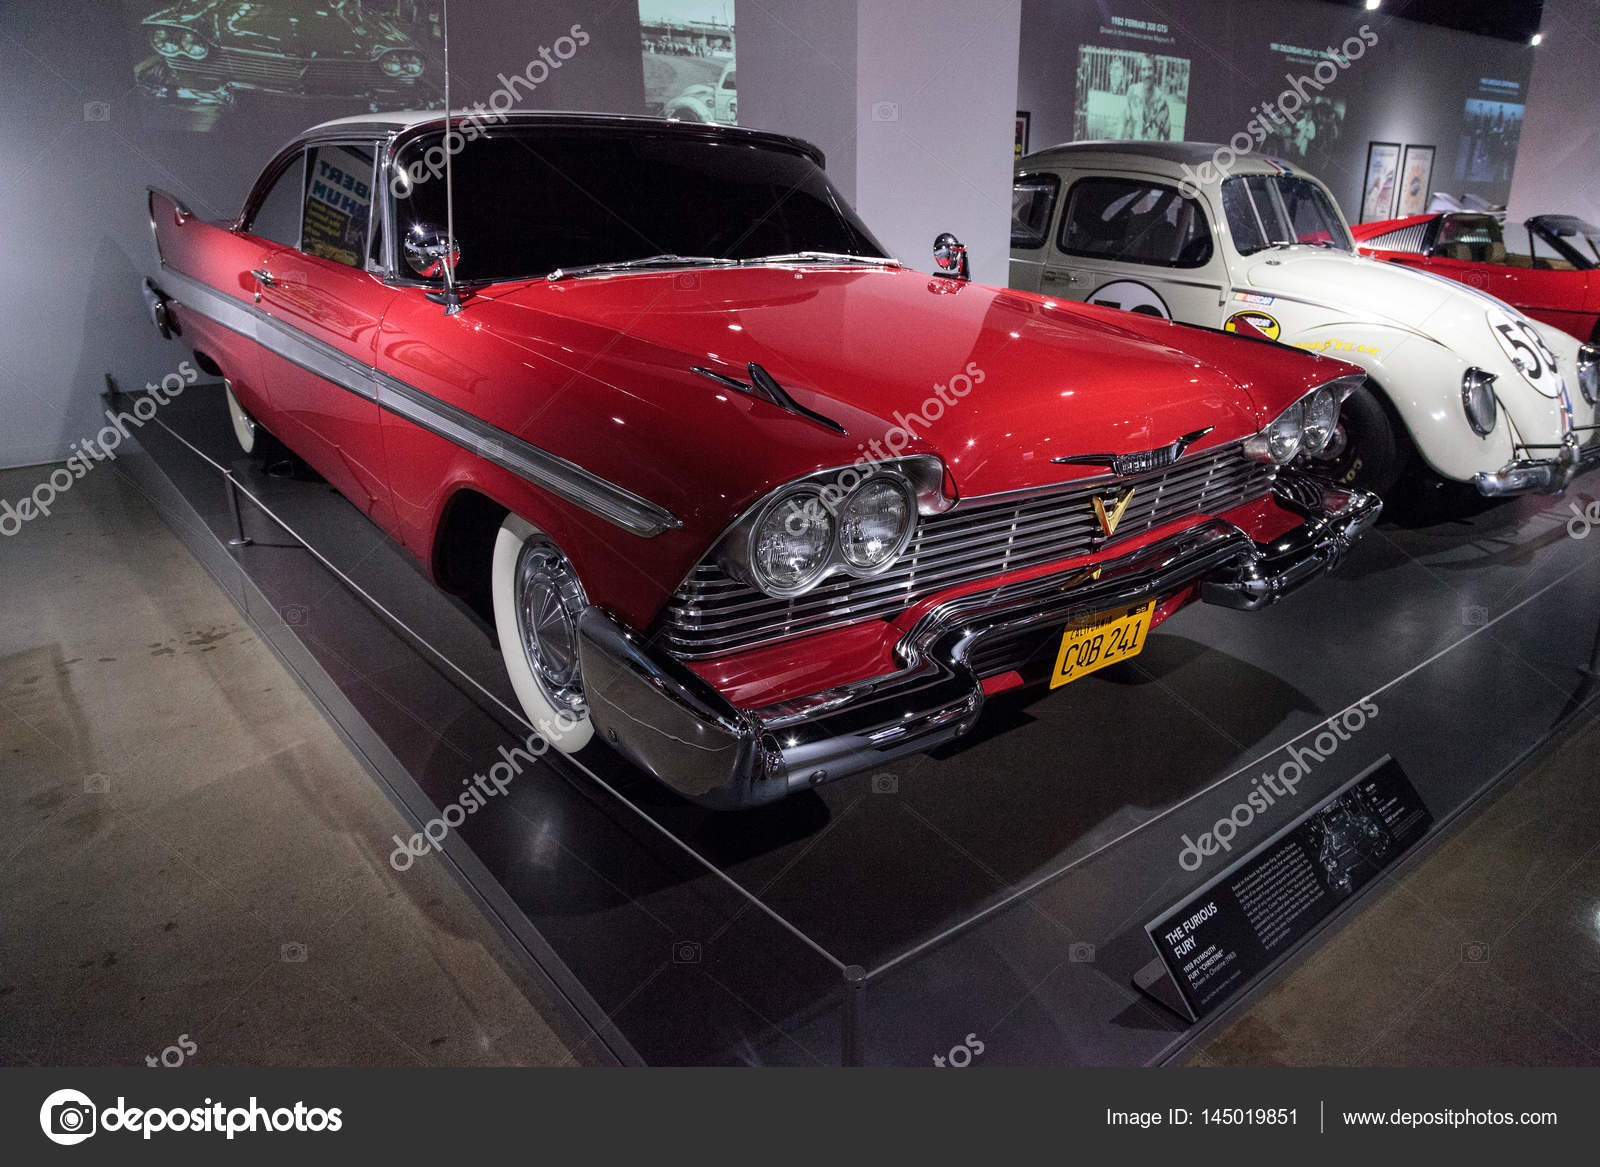 rot 1958 plymouth fury stunt auto redaktionelles. Black Bedroom Furniture Sets. Home Design Ideas